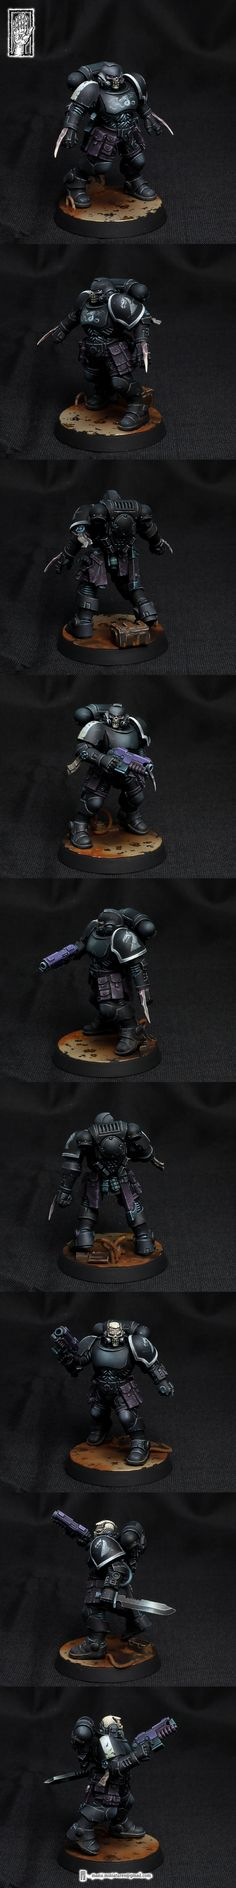 Black Dragons Reivers - posted in + HALL OF HONOUR +: Hope you like it.   Lore:http://wh40k.lexican...i/Black_Dragons   Pics:     How I paint lenses:   Colors used: Scala 75 Violet (dark purple) Andrea Royal Purple (light purple)Scala 75 F&G Hykey Yellow (light beige) black&white   pic1: lens ready to paint. pic2: dark purple pic3: mix of dark and light purple pic4: mix of light purple and little light beige pic5: white dots on both ends of the lens...